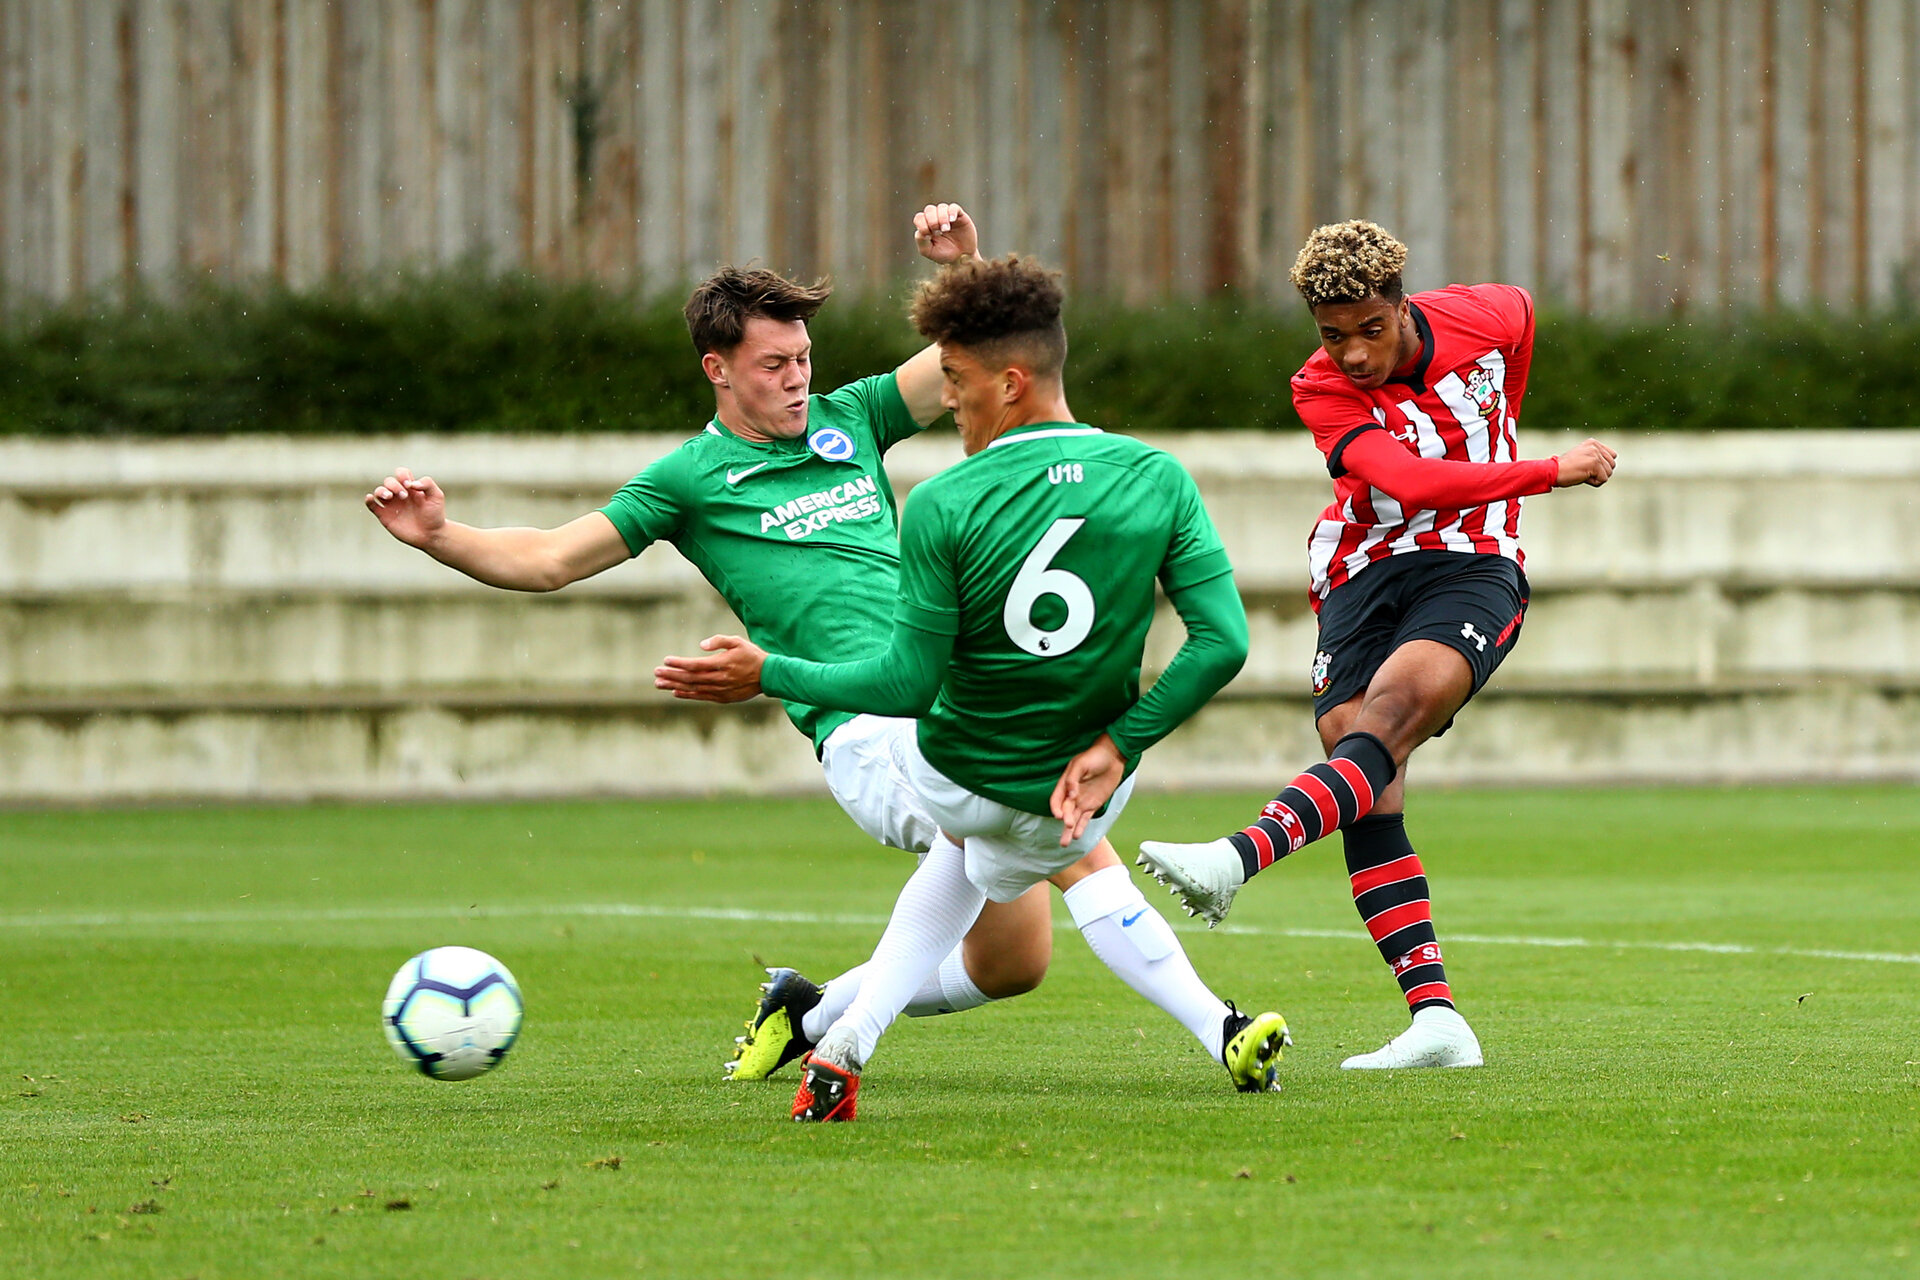 SOUTHAMPTON, ENGLAND - SEPTEMBER 22: Enzo Robise (right) during the U18 Premier League match between Southampton FC and Brighton Hove Albion at Staplewood Training Ground on September 22, 2018 in Southampton, United Kingdom. (Photo by James Bridle - Southampton FC/Southampton FC via Getty Images)